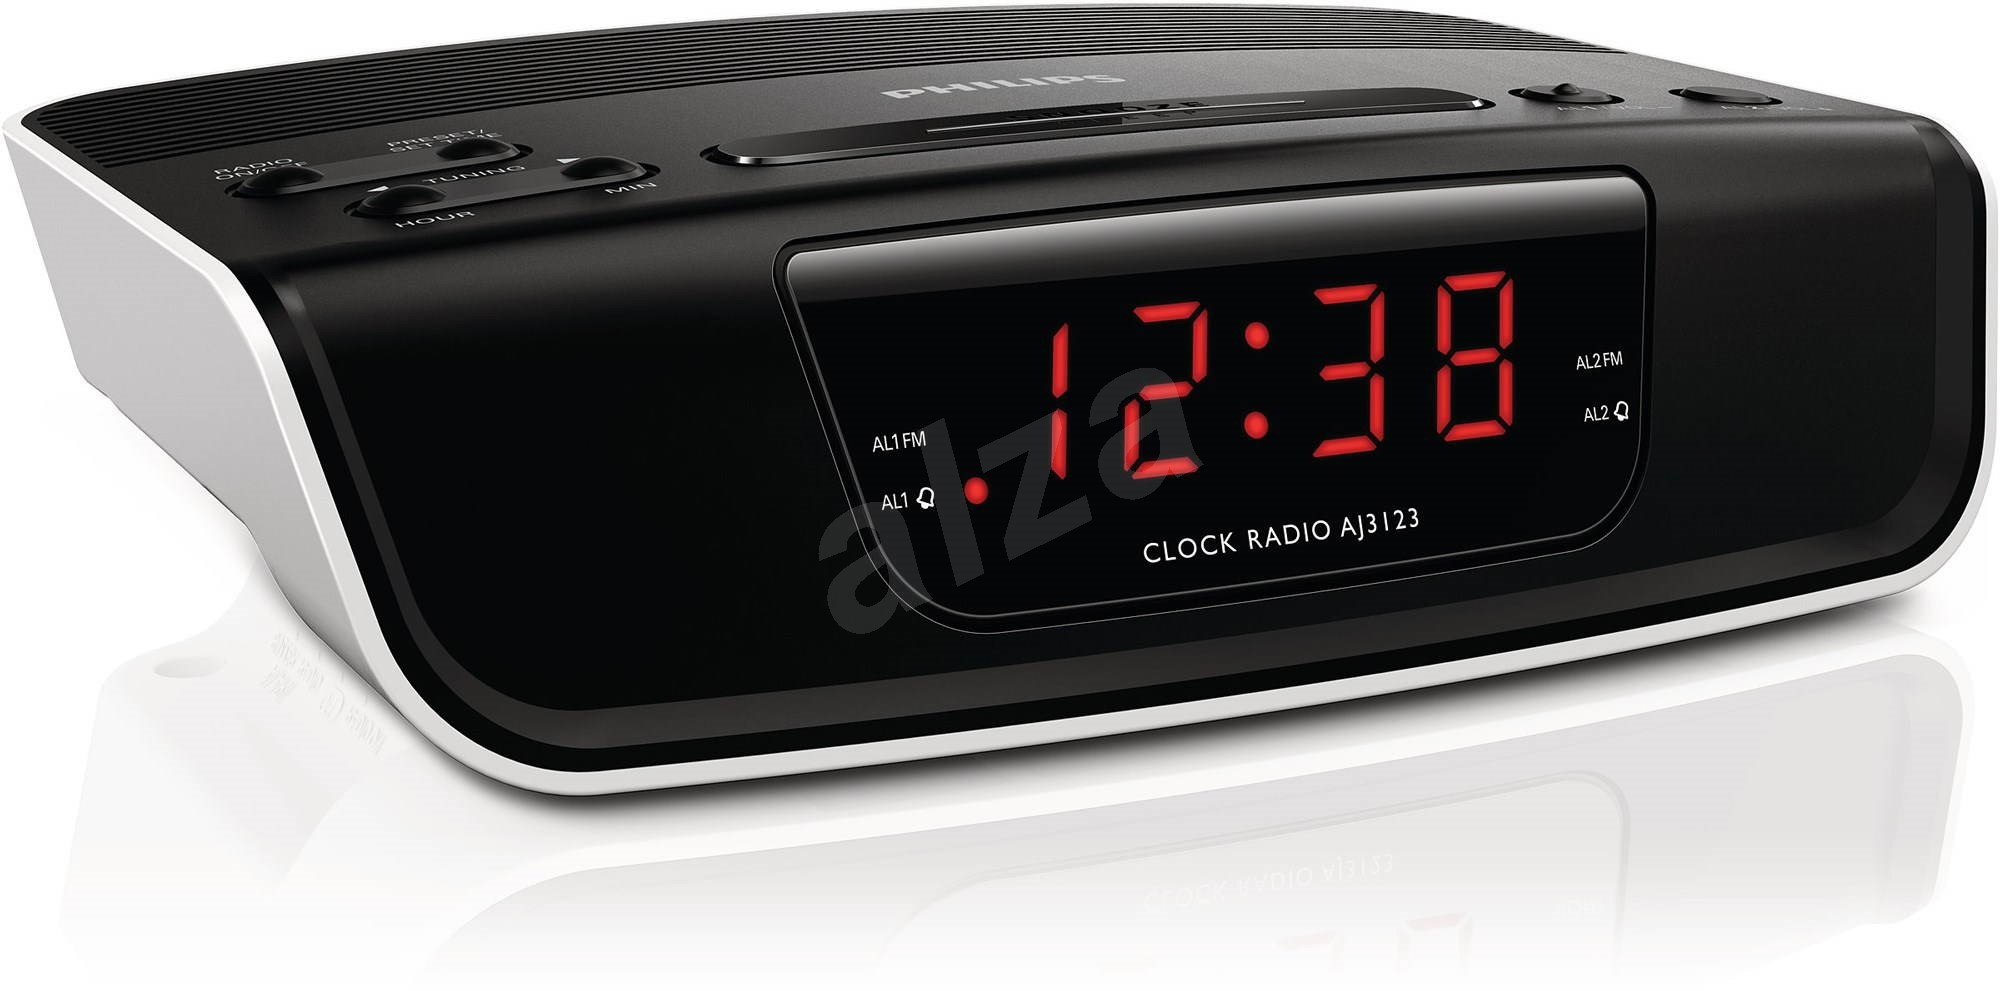 Philips Aj3123 D310770 on trendy clock radio